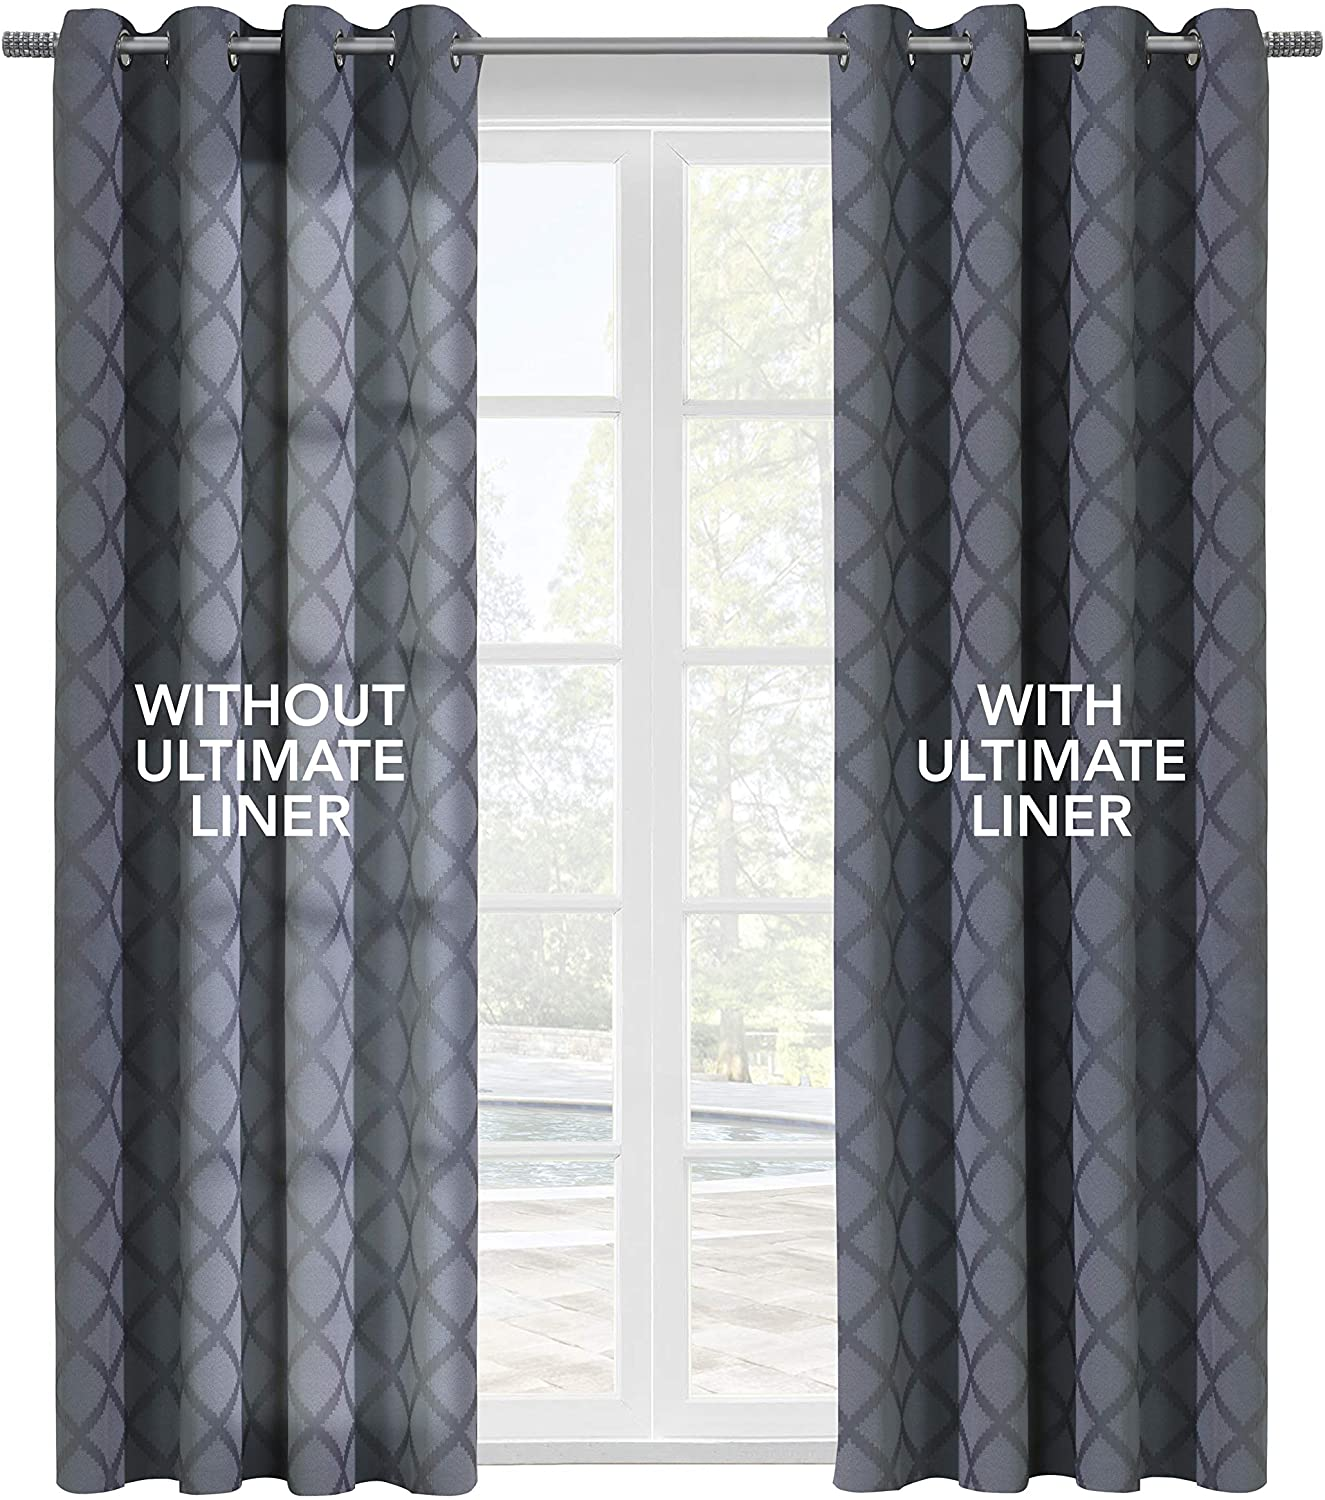 Thermalogic Ultimate Thermal Energy Saving Blackout Window Curtain Liner, 45x113, White